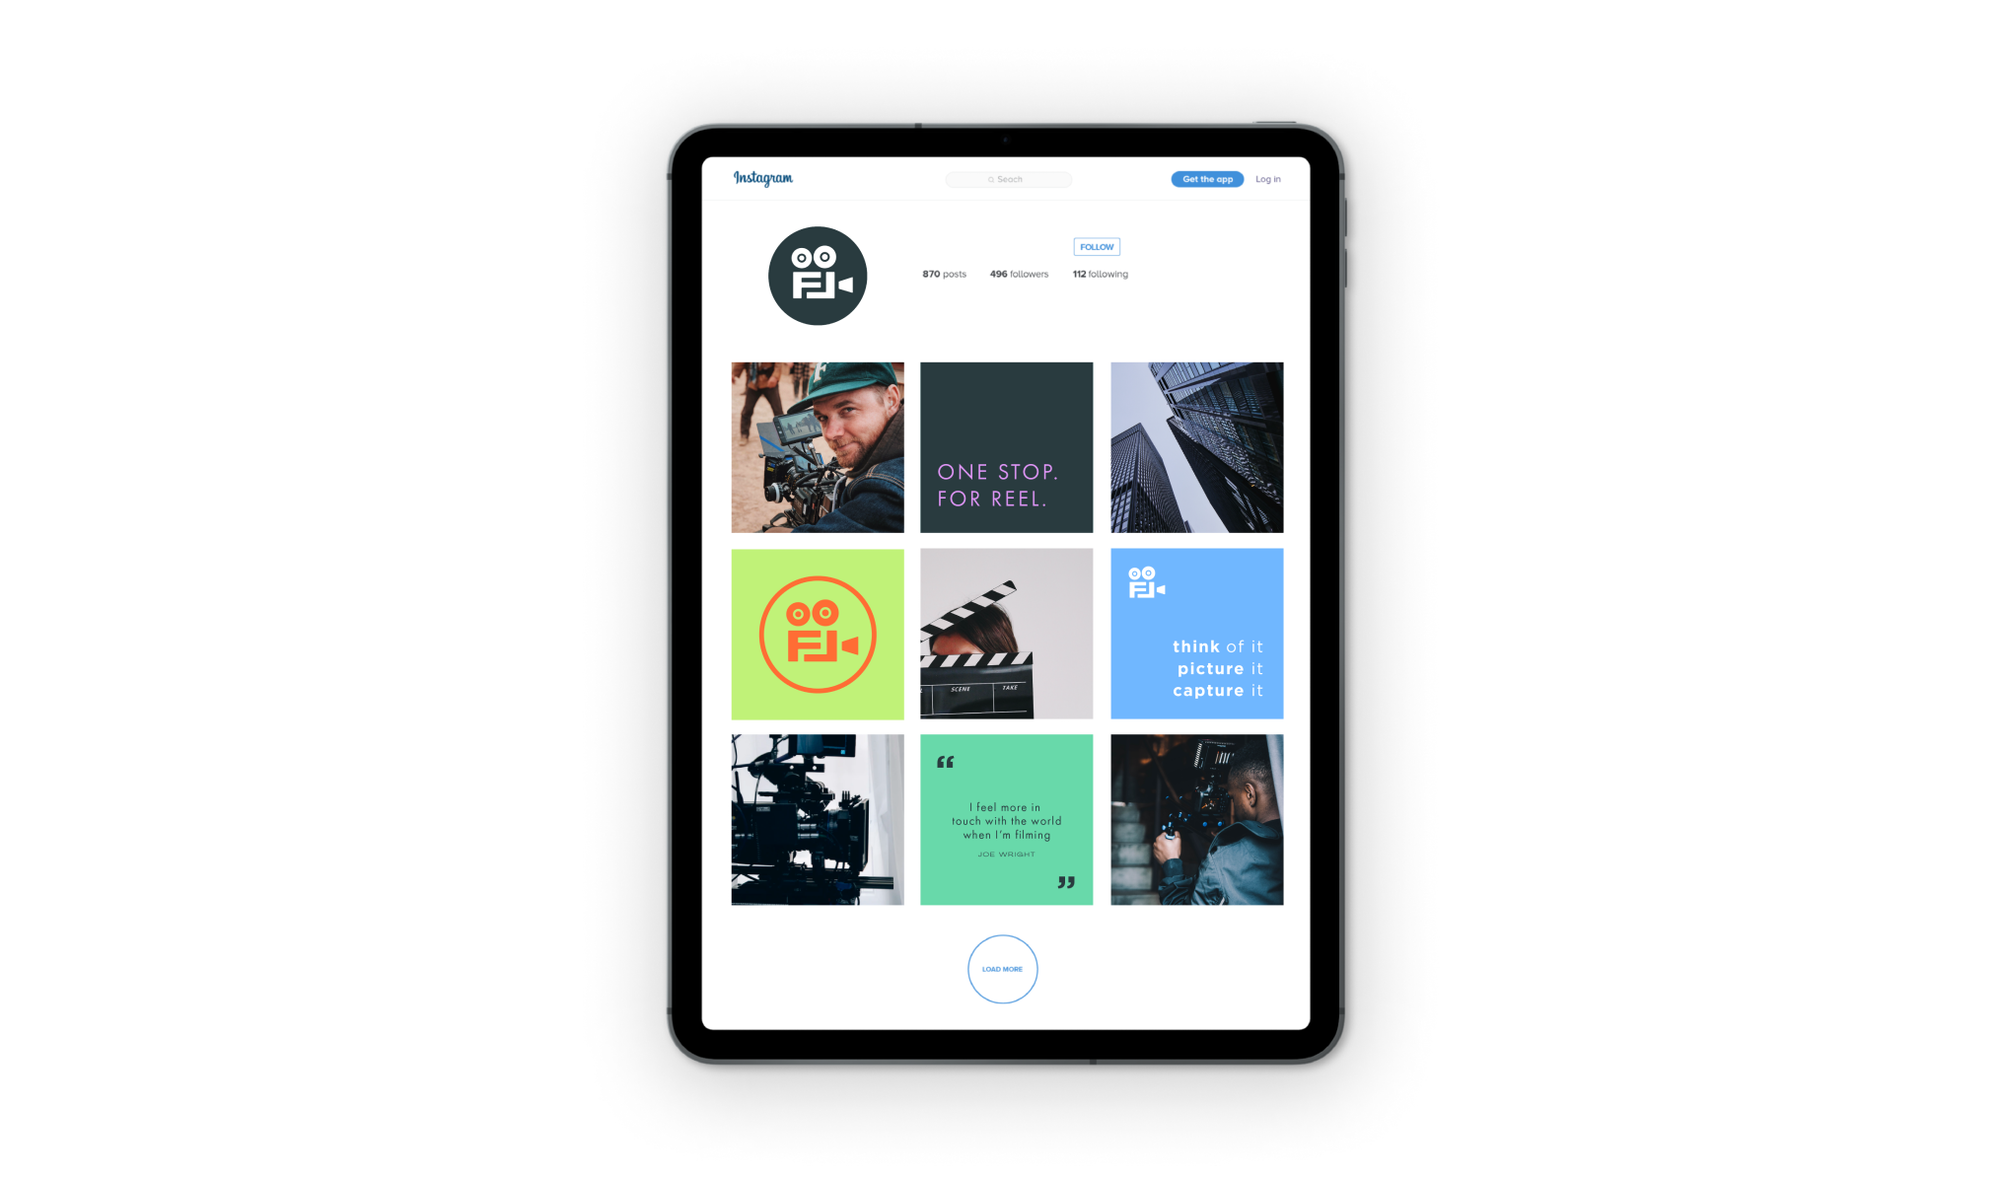 Film London Instagram feed mocked up on a tablet